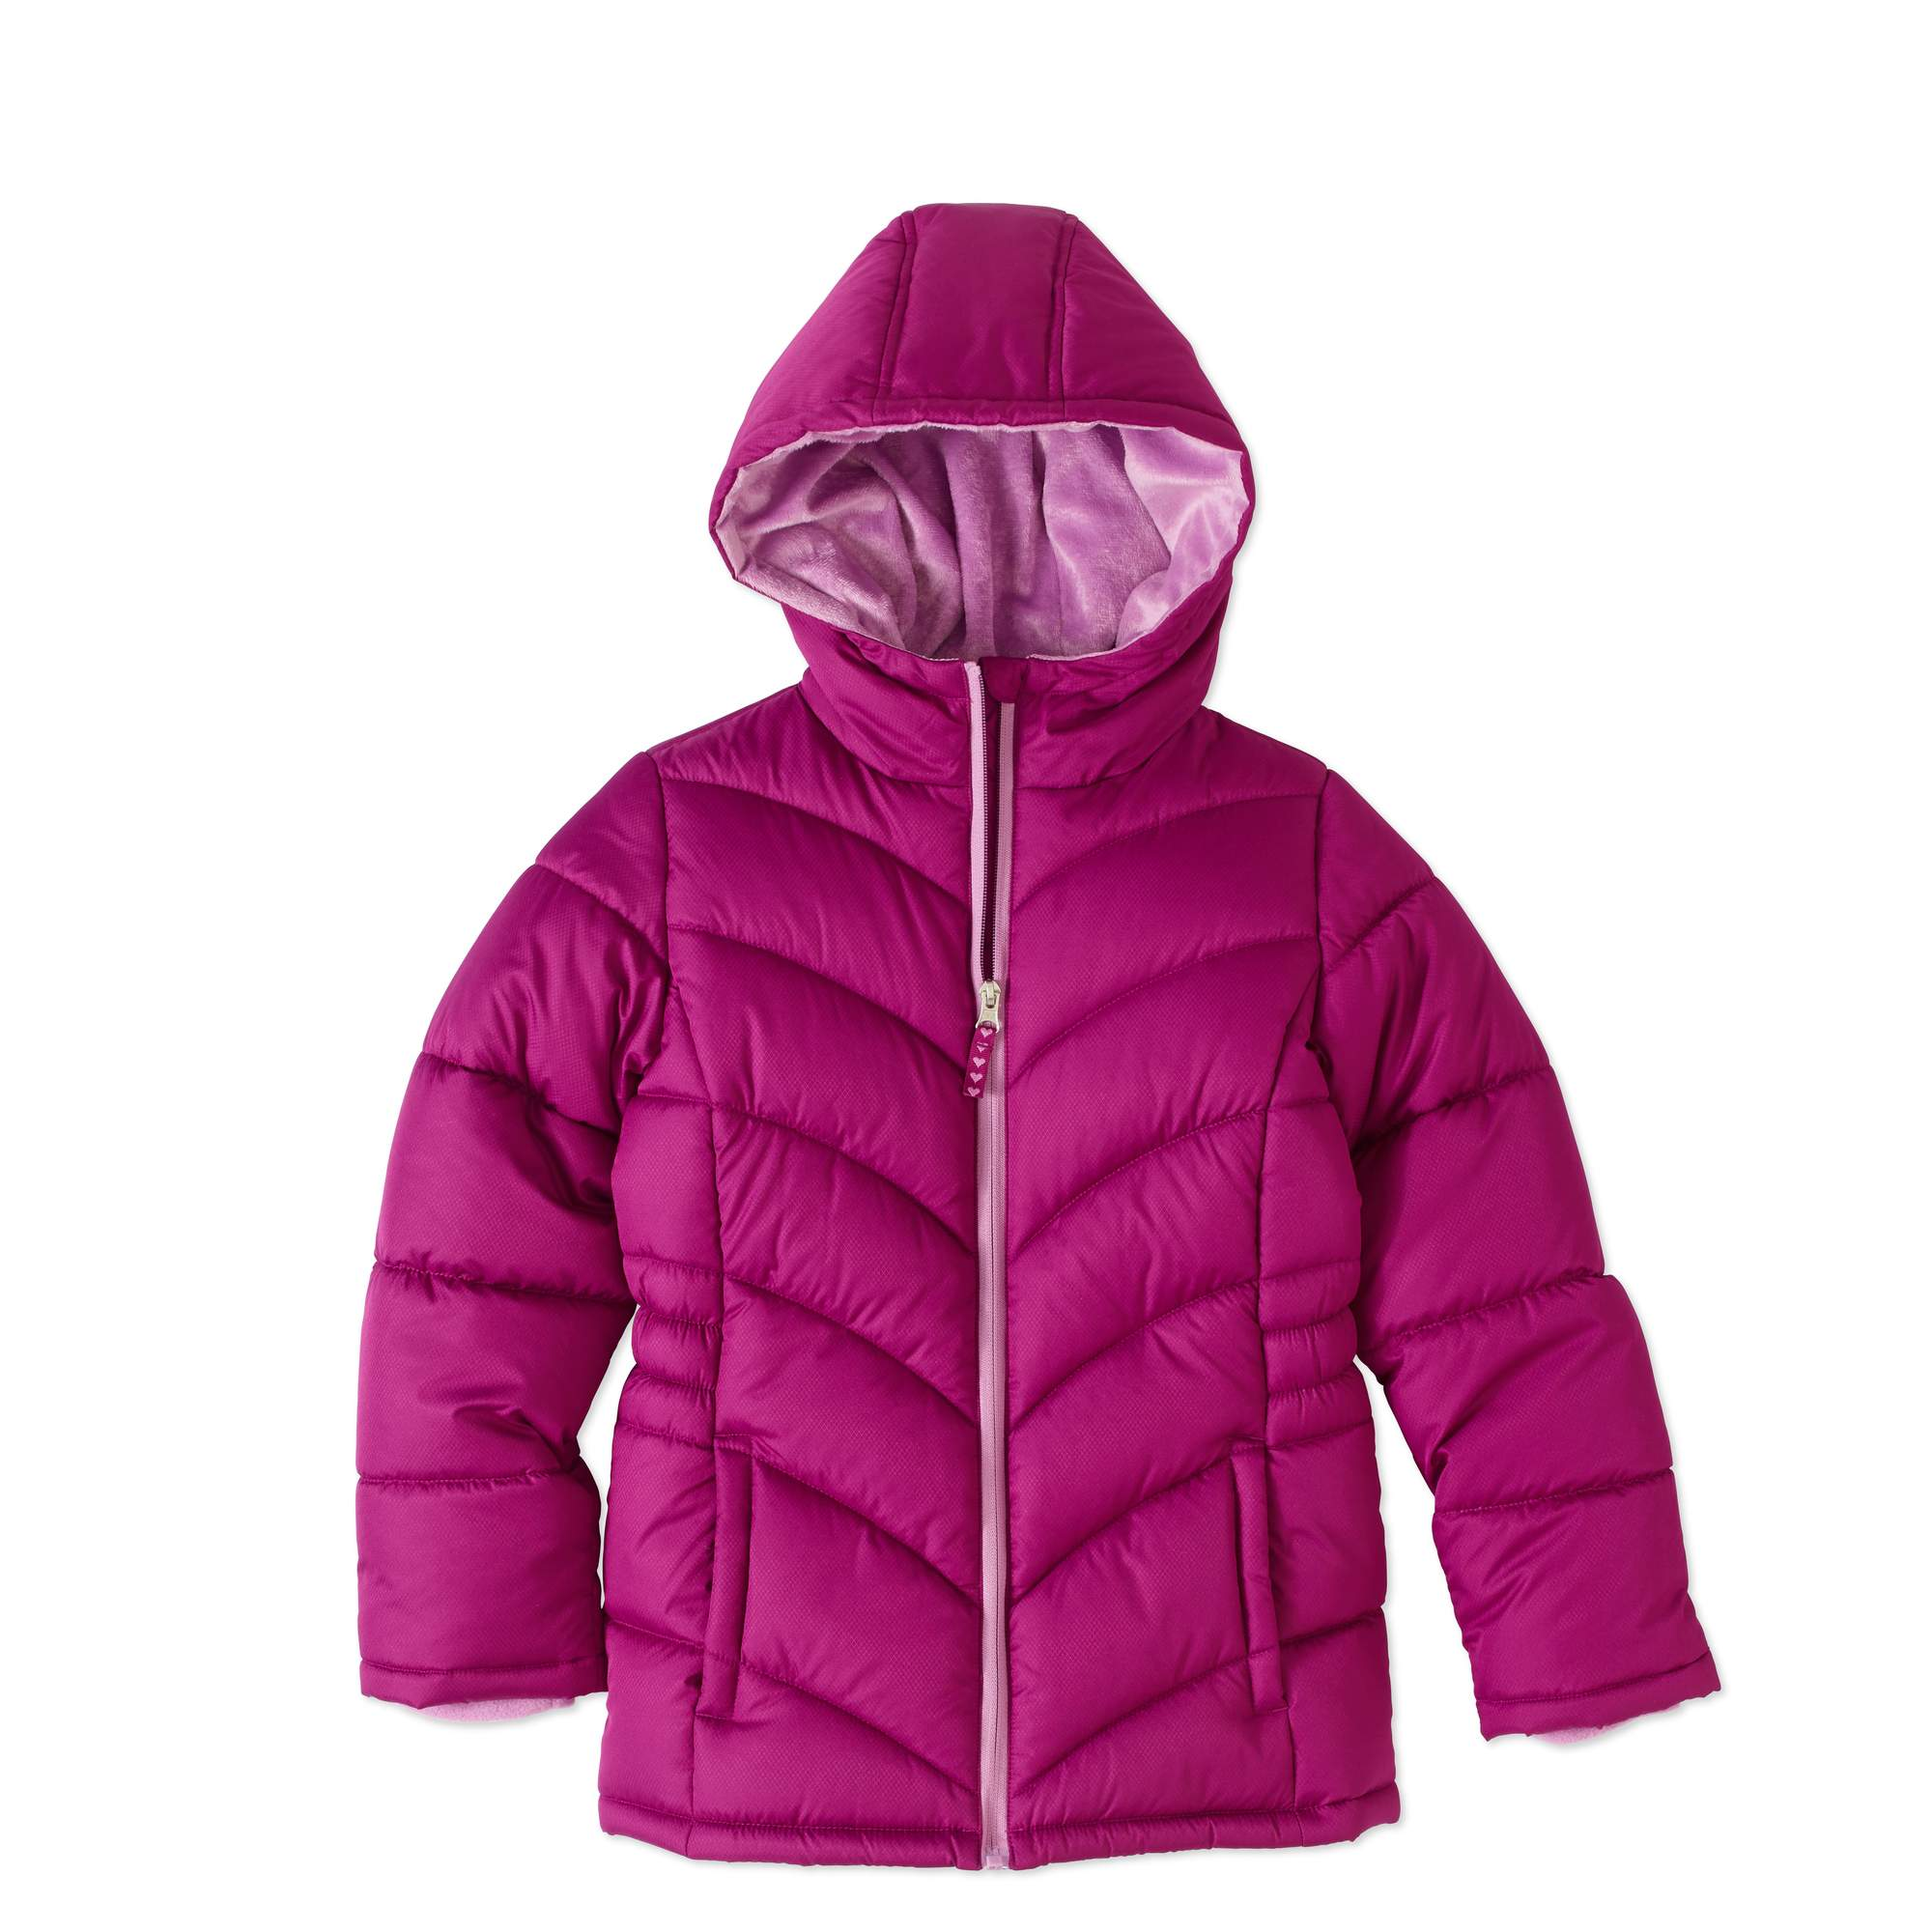 Faded Glory Girls' Quilted Bubble Jacket